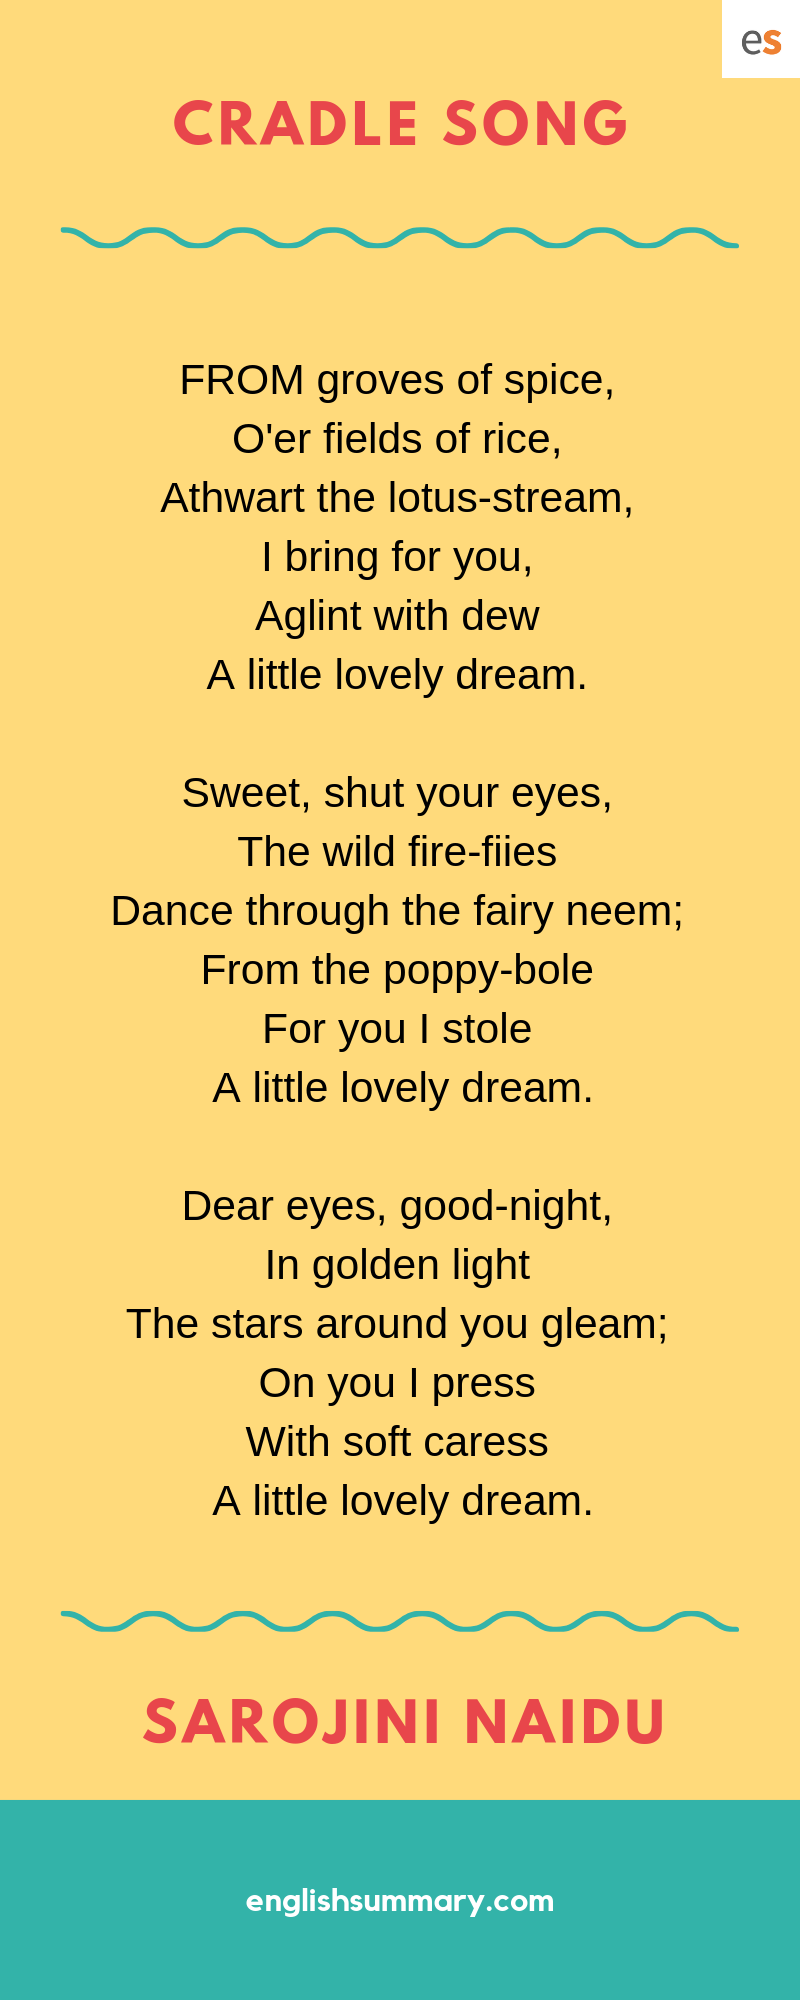 Cradle Song By Sarojini Naidu Good Night Love Quote Quotes The Sun Rising Poem Theme